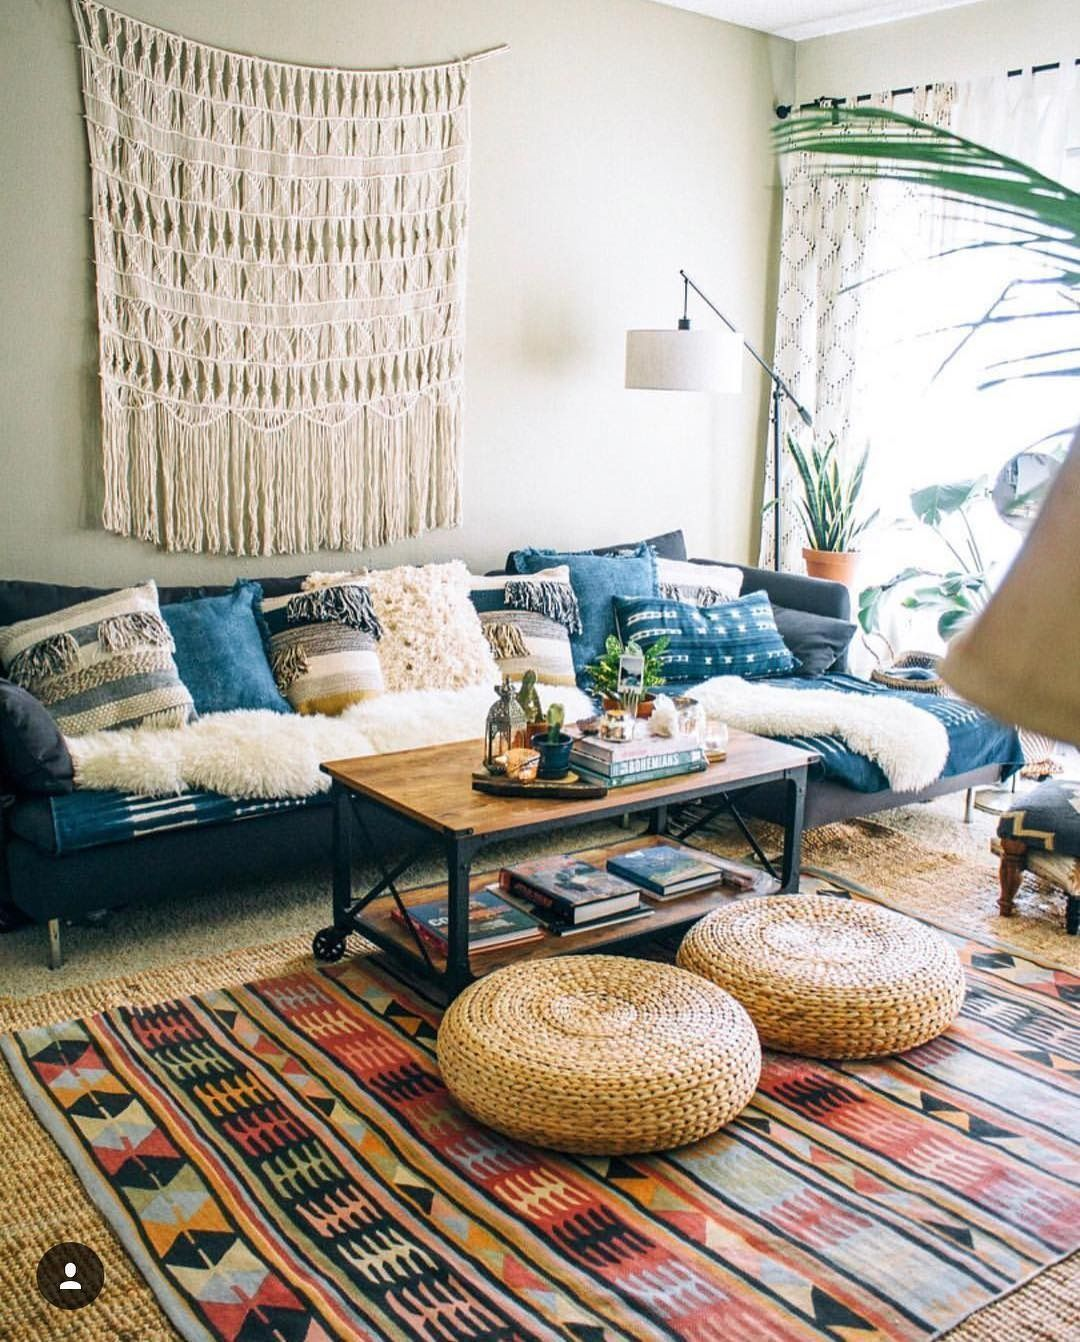 Diy Interior Designer: Bohemian Interior Design You Must Know